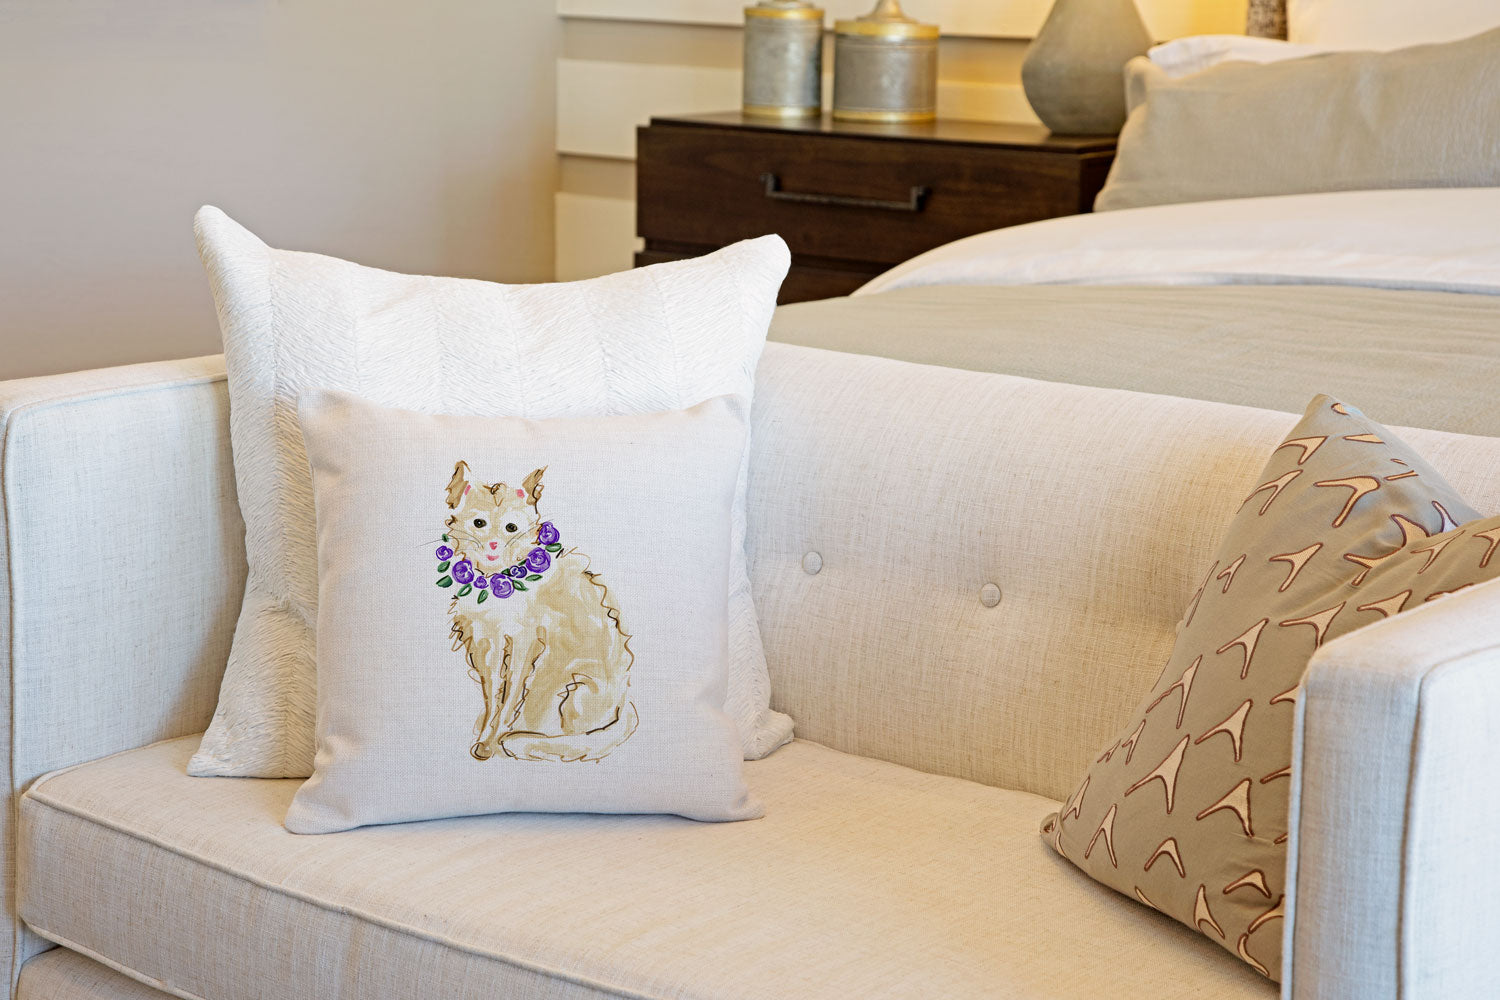 Ginger Cat Throw Pillow Cover - Cat Illustration Throw Pillow Cover Collection